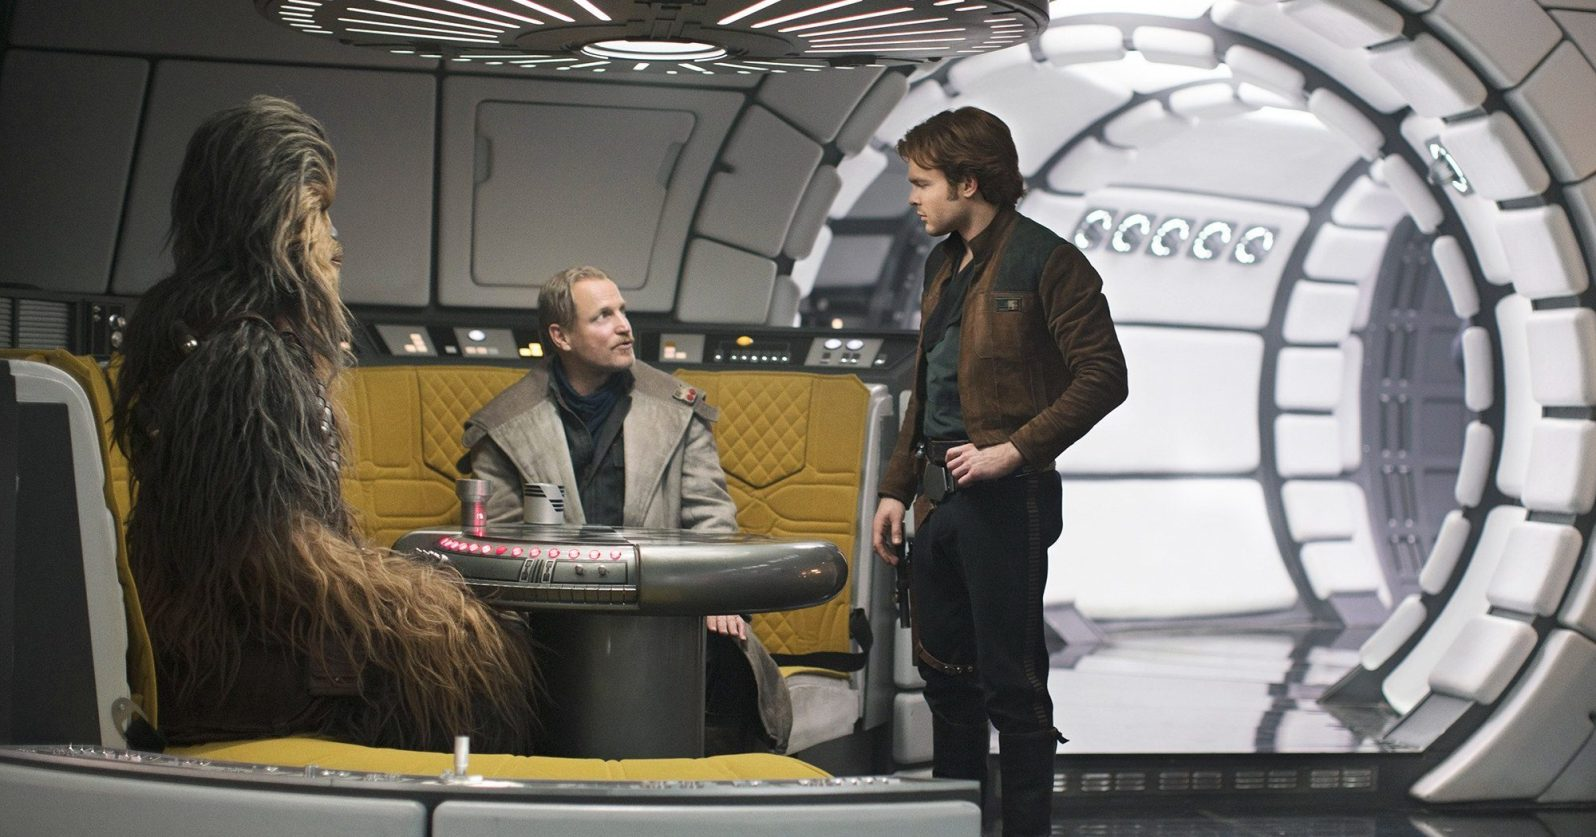 Solo: A Star Wars Story- 2018 Film- Space Ship corridor with yellow seating area in Millenium Falcon- Best Production Design of 2018